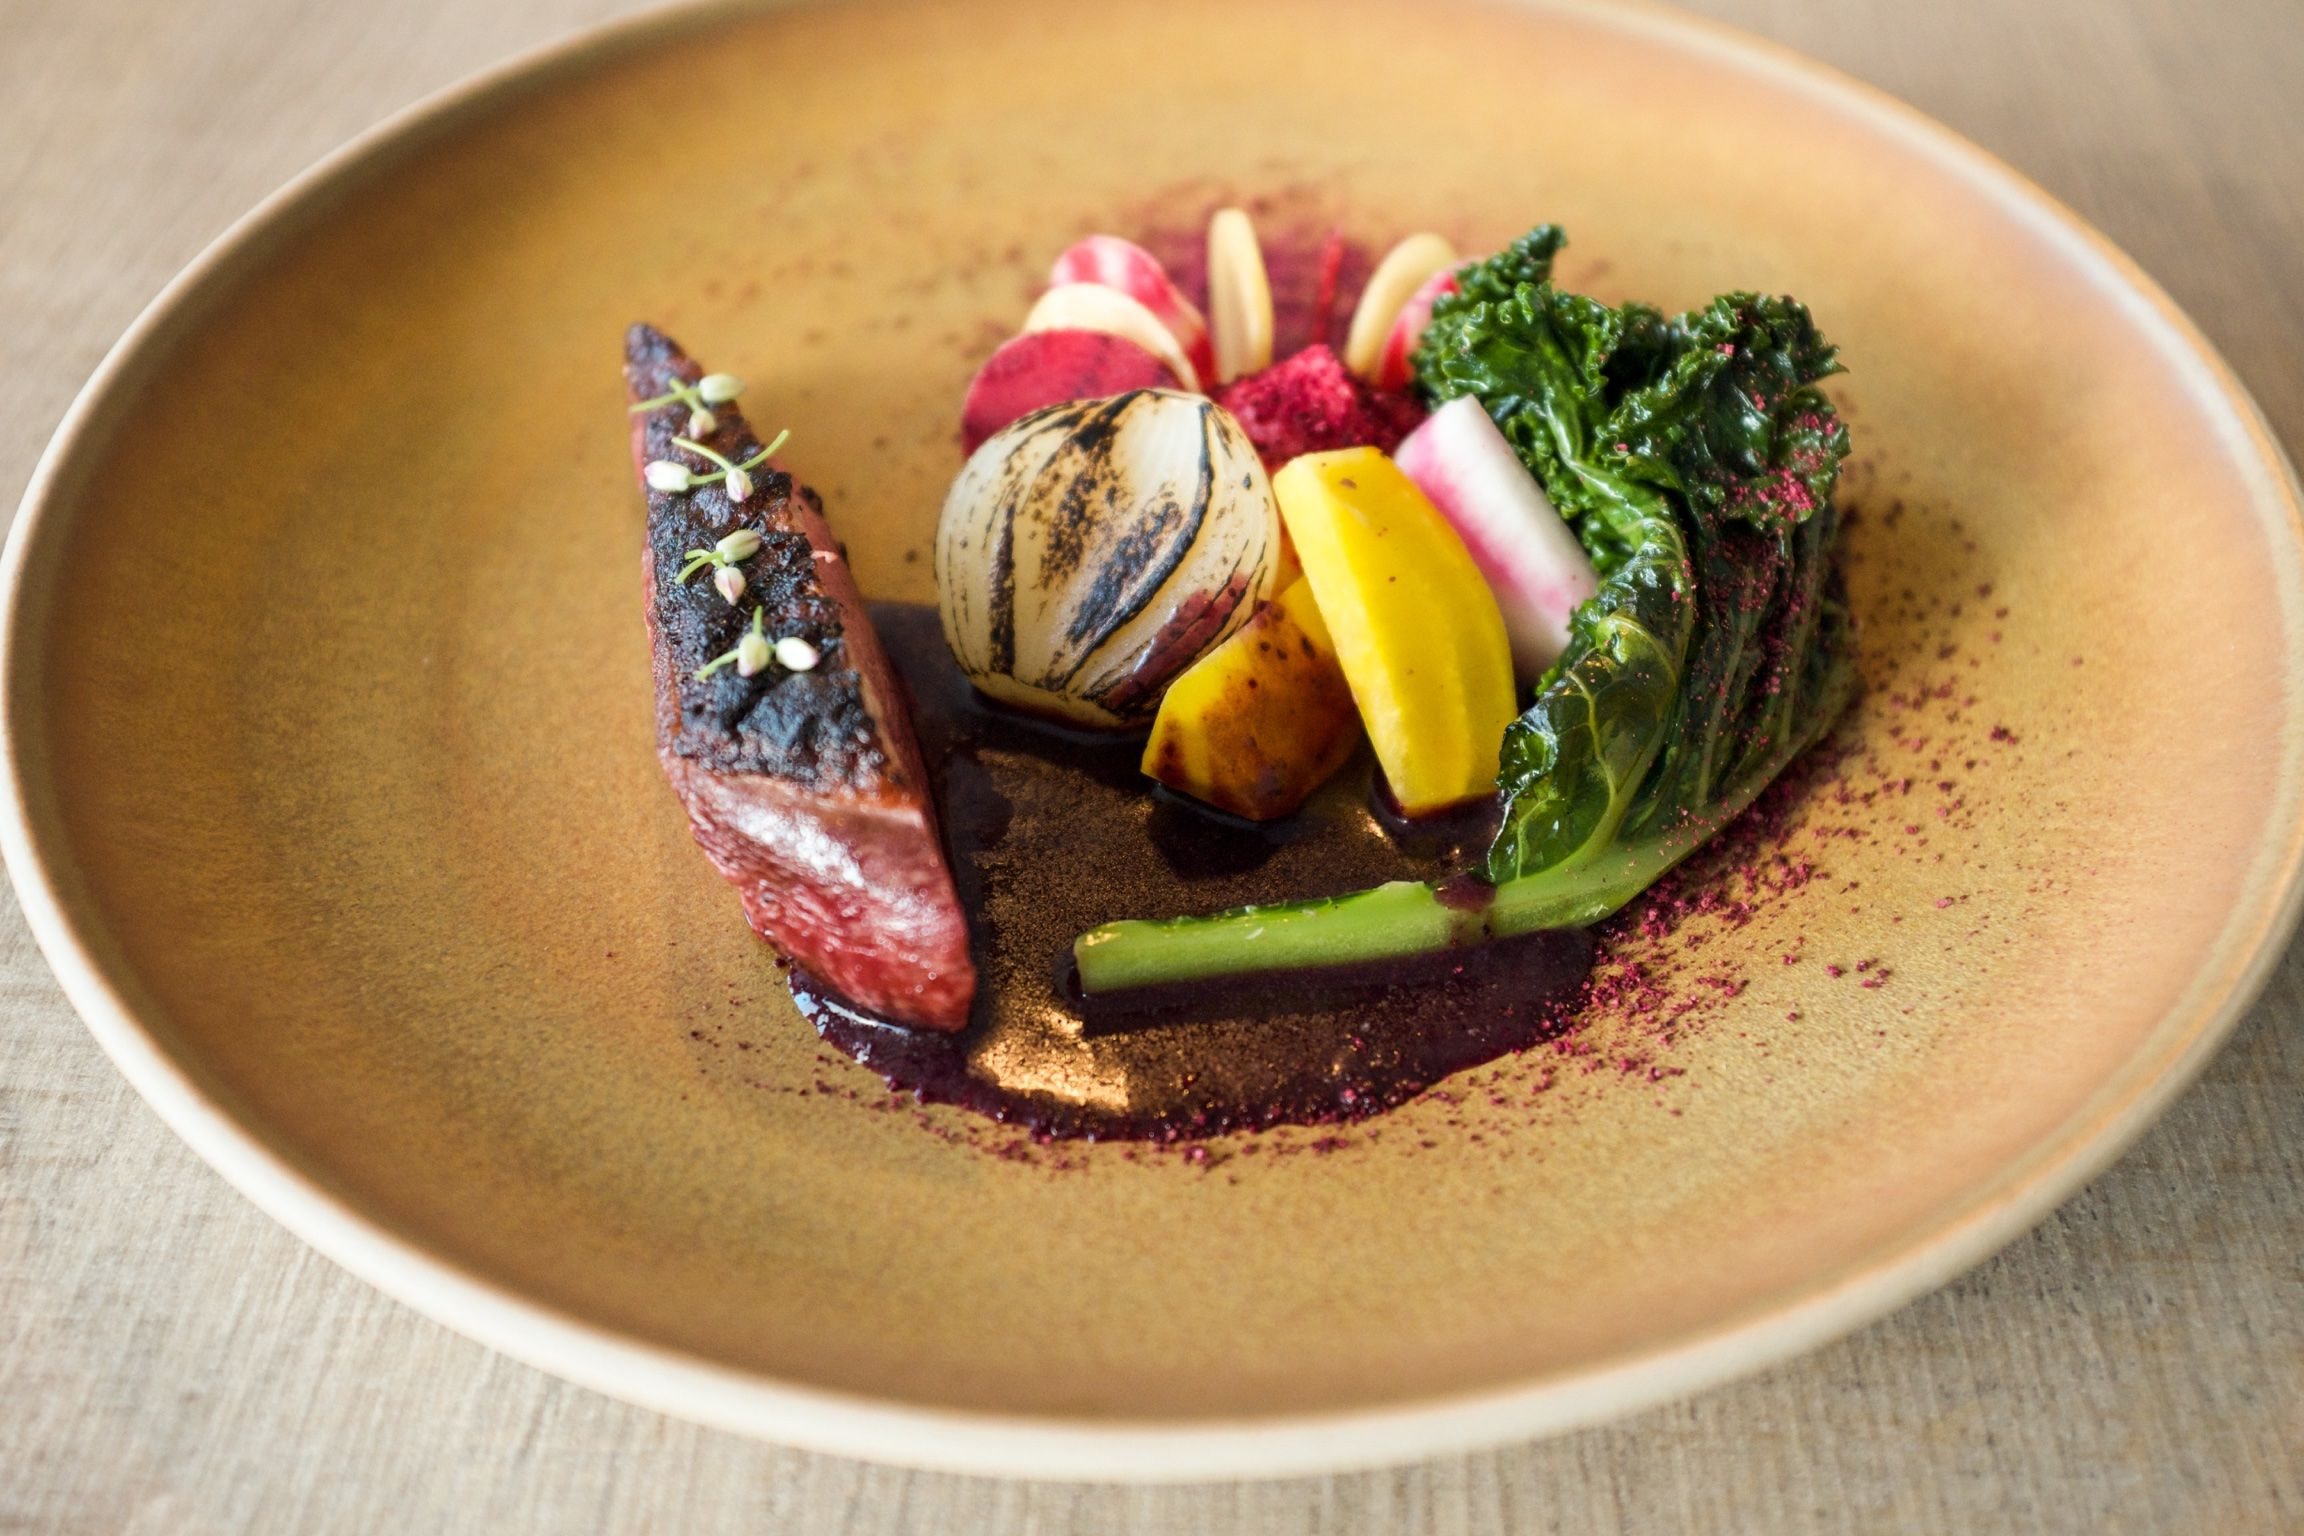 Duck -Cabbage - Beets